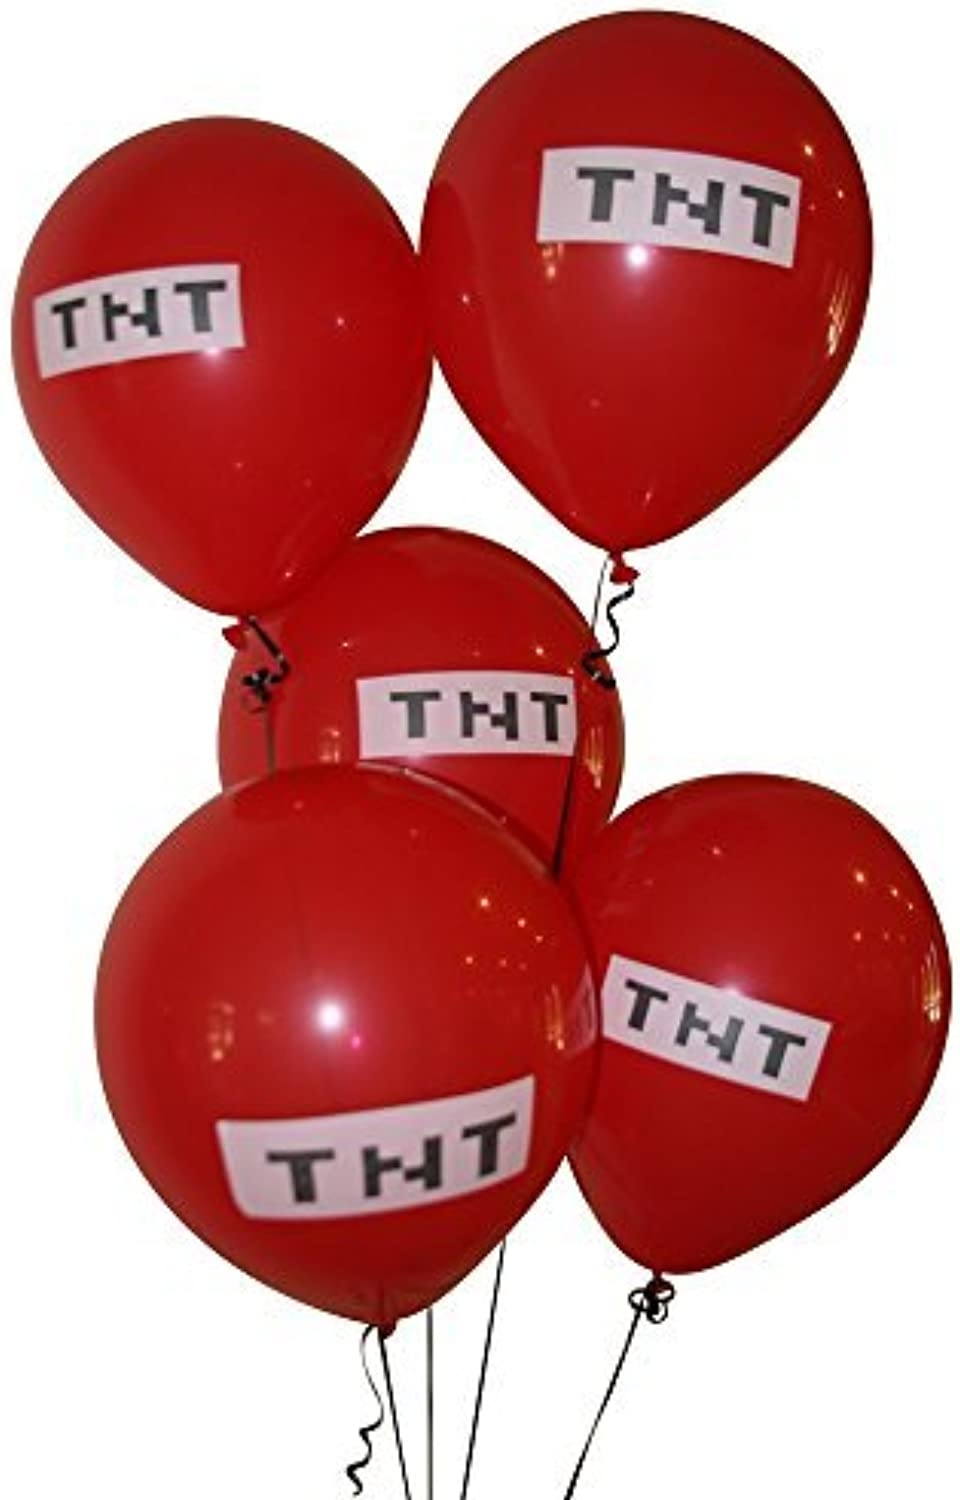 Pixelated Red TNT Balloon 12 Inch Latex Party Balloons  25 Count by Pixel Party Supplies